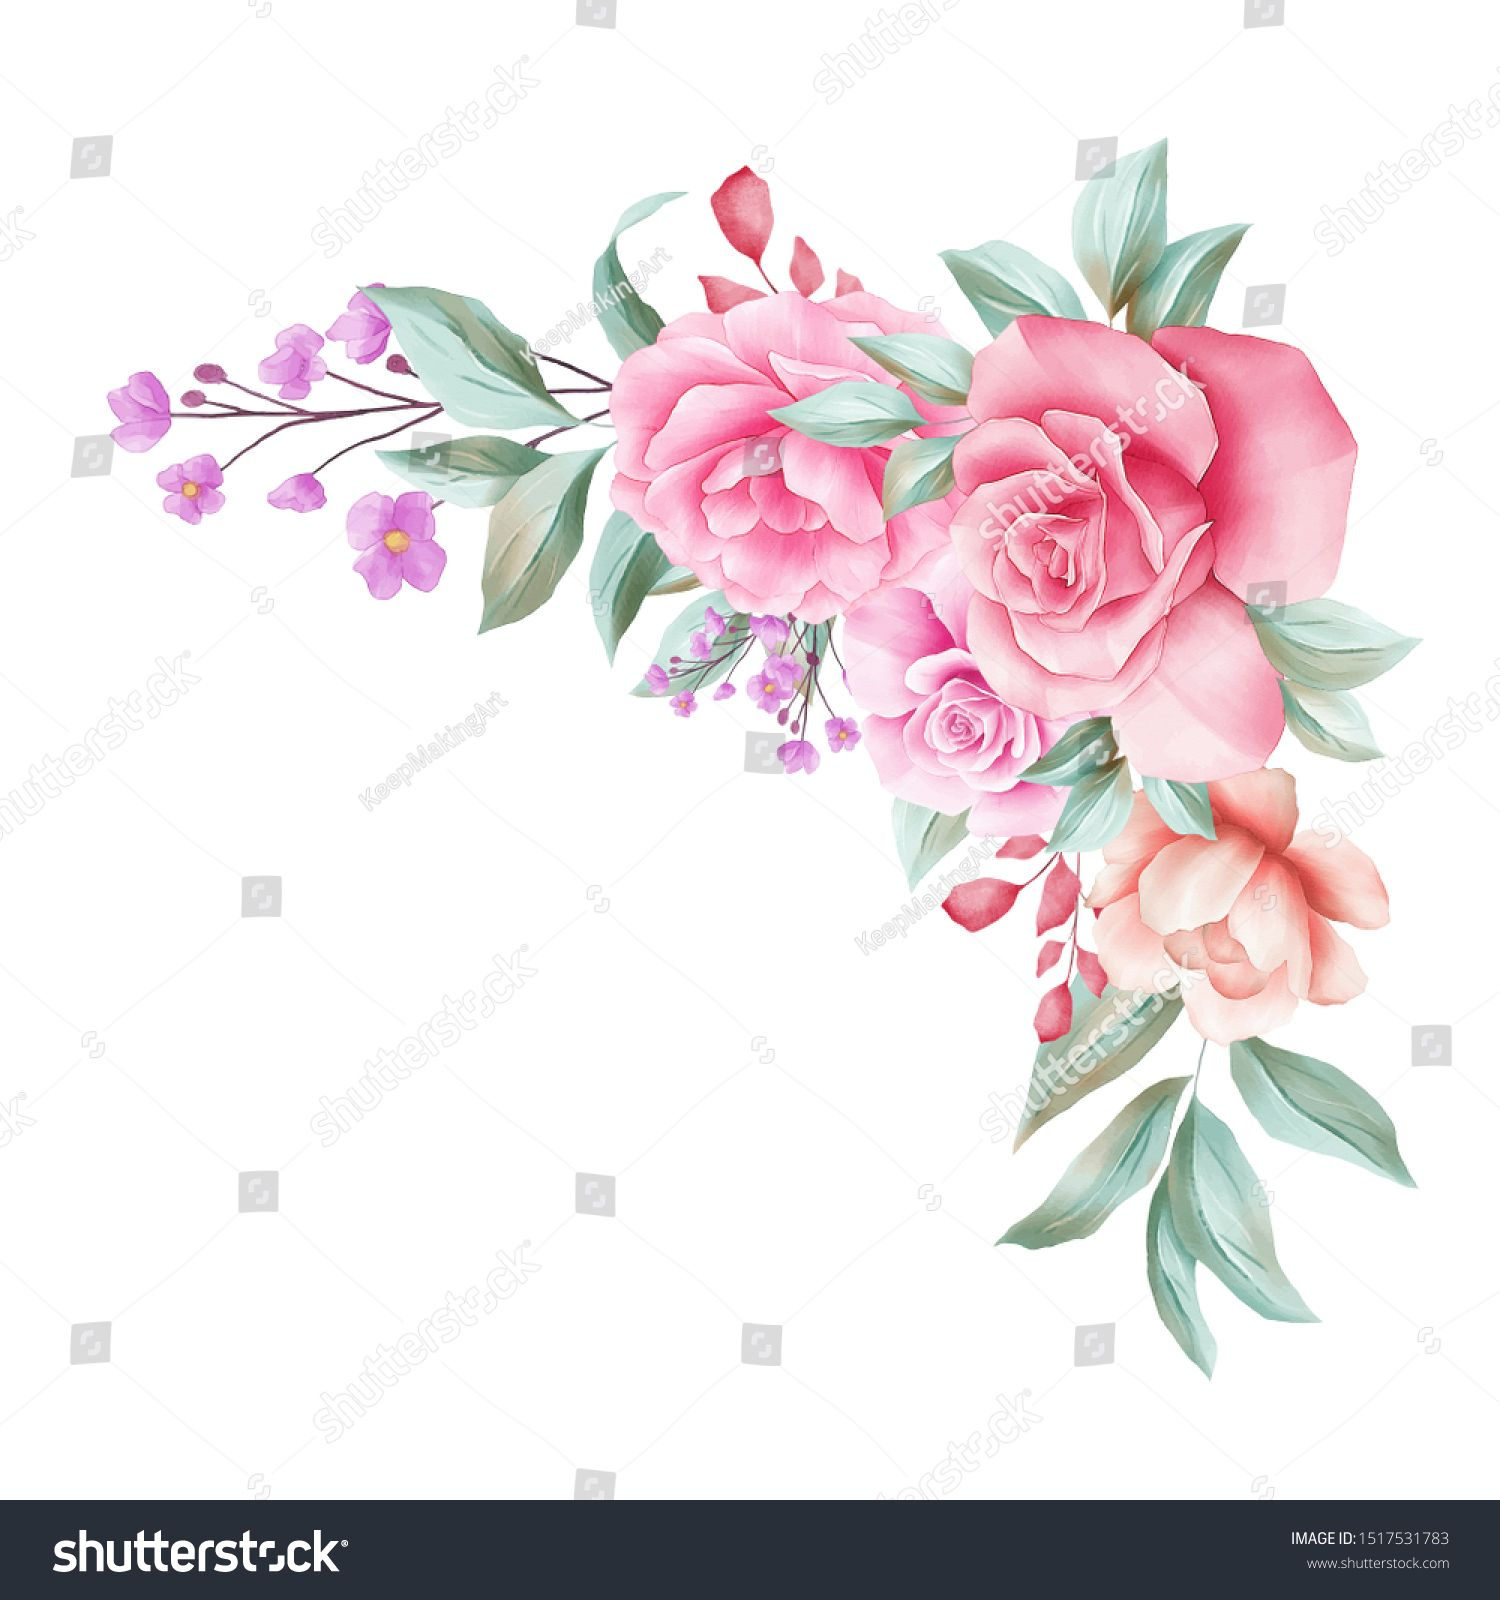 Watercolor Floral Border Decoration For Wedding Invitation Card